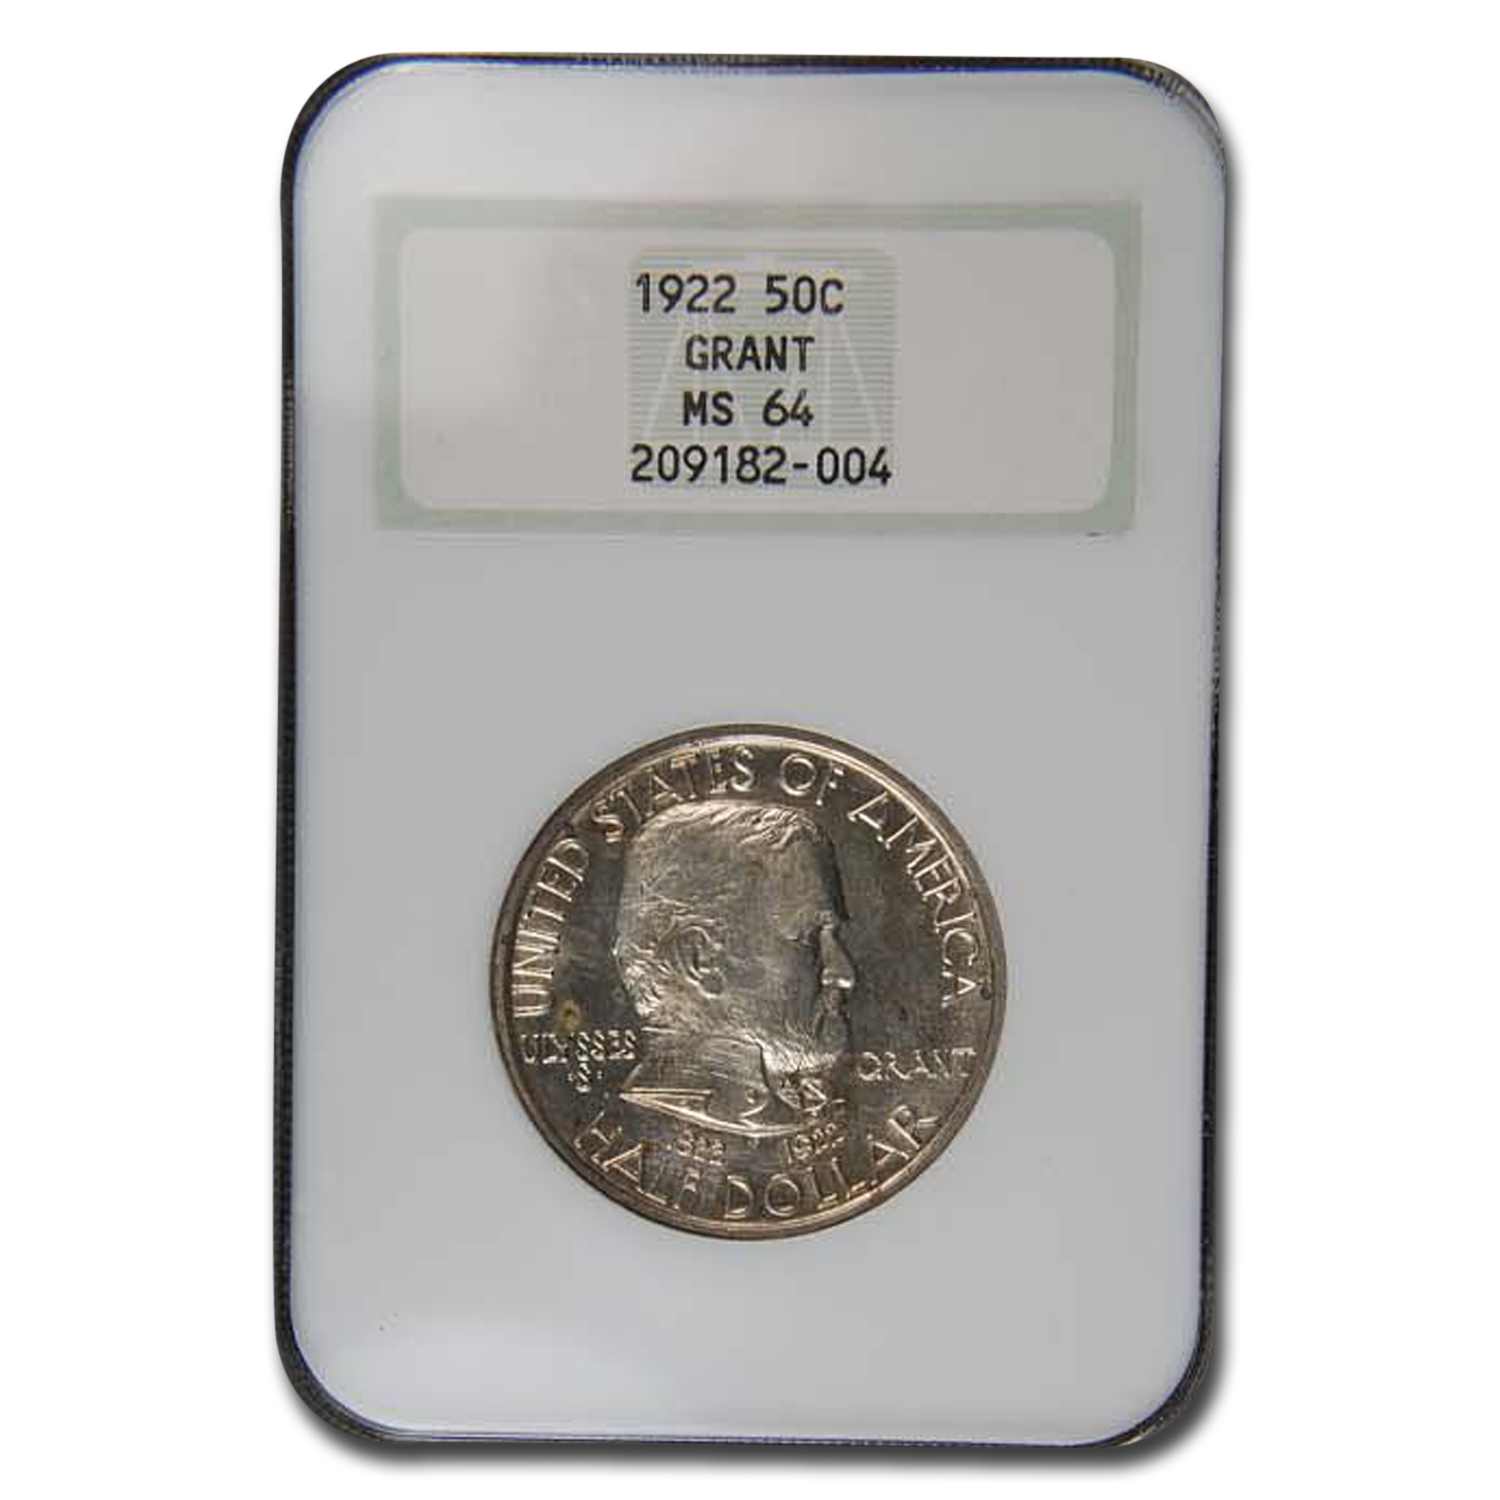 1922 Grant Memorial Commemorative Half Dollar MS-64 NGC